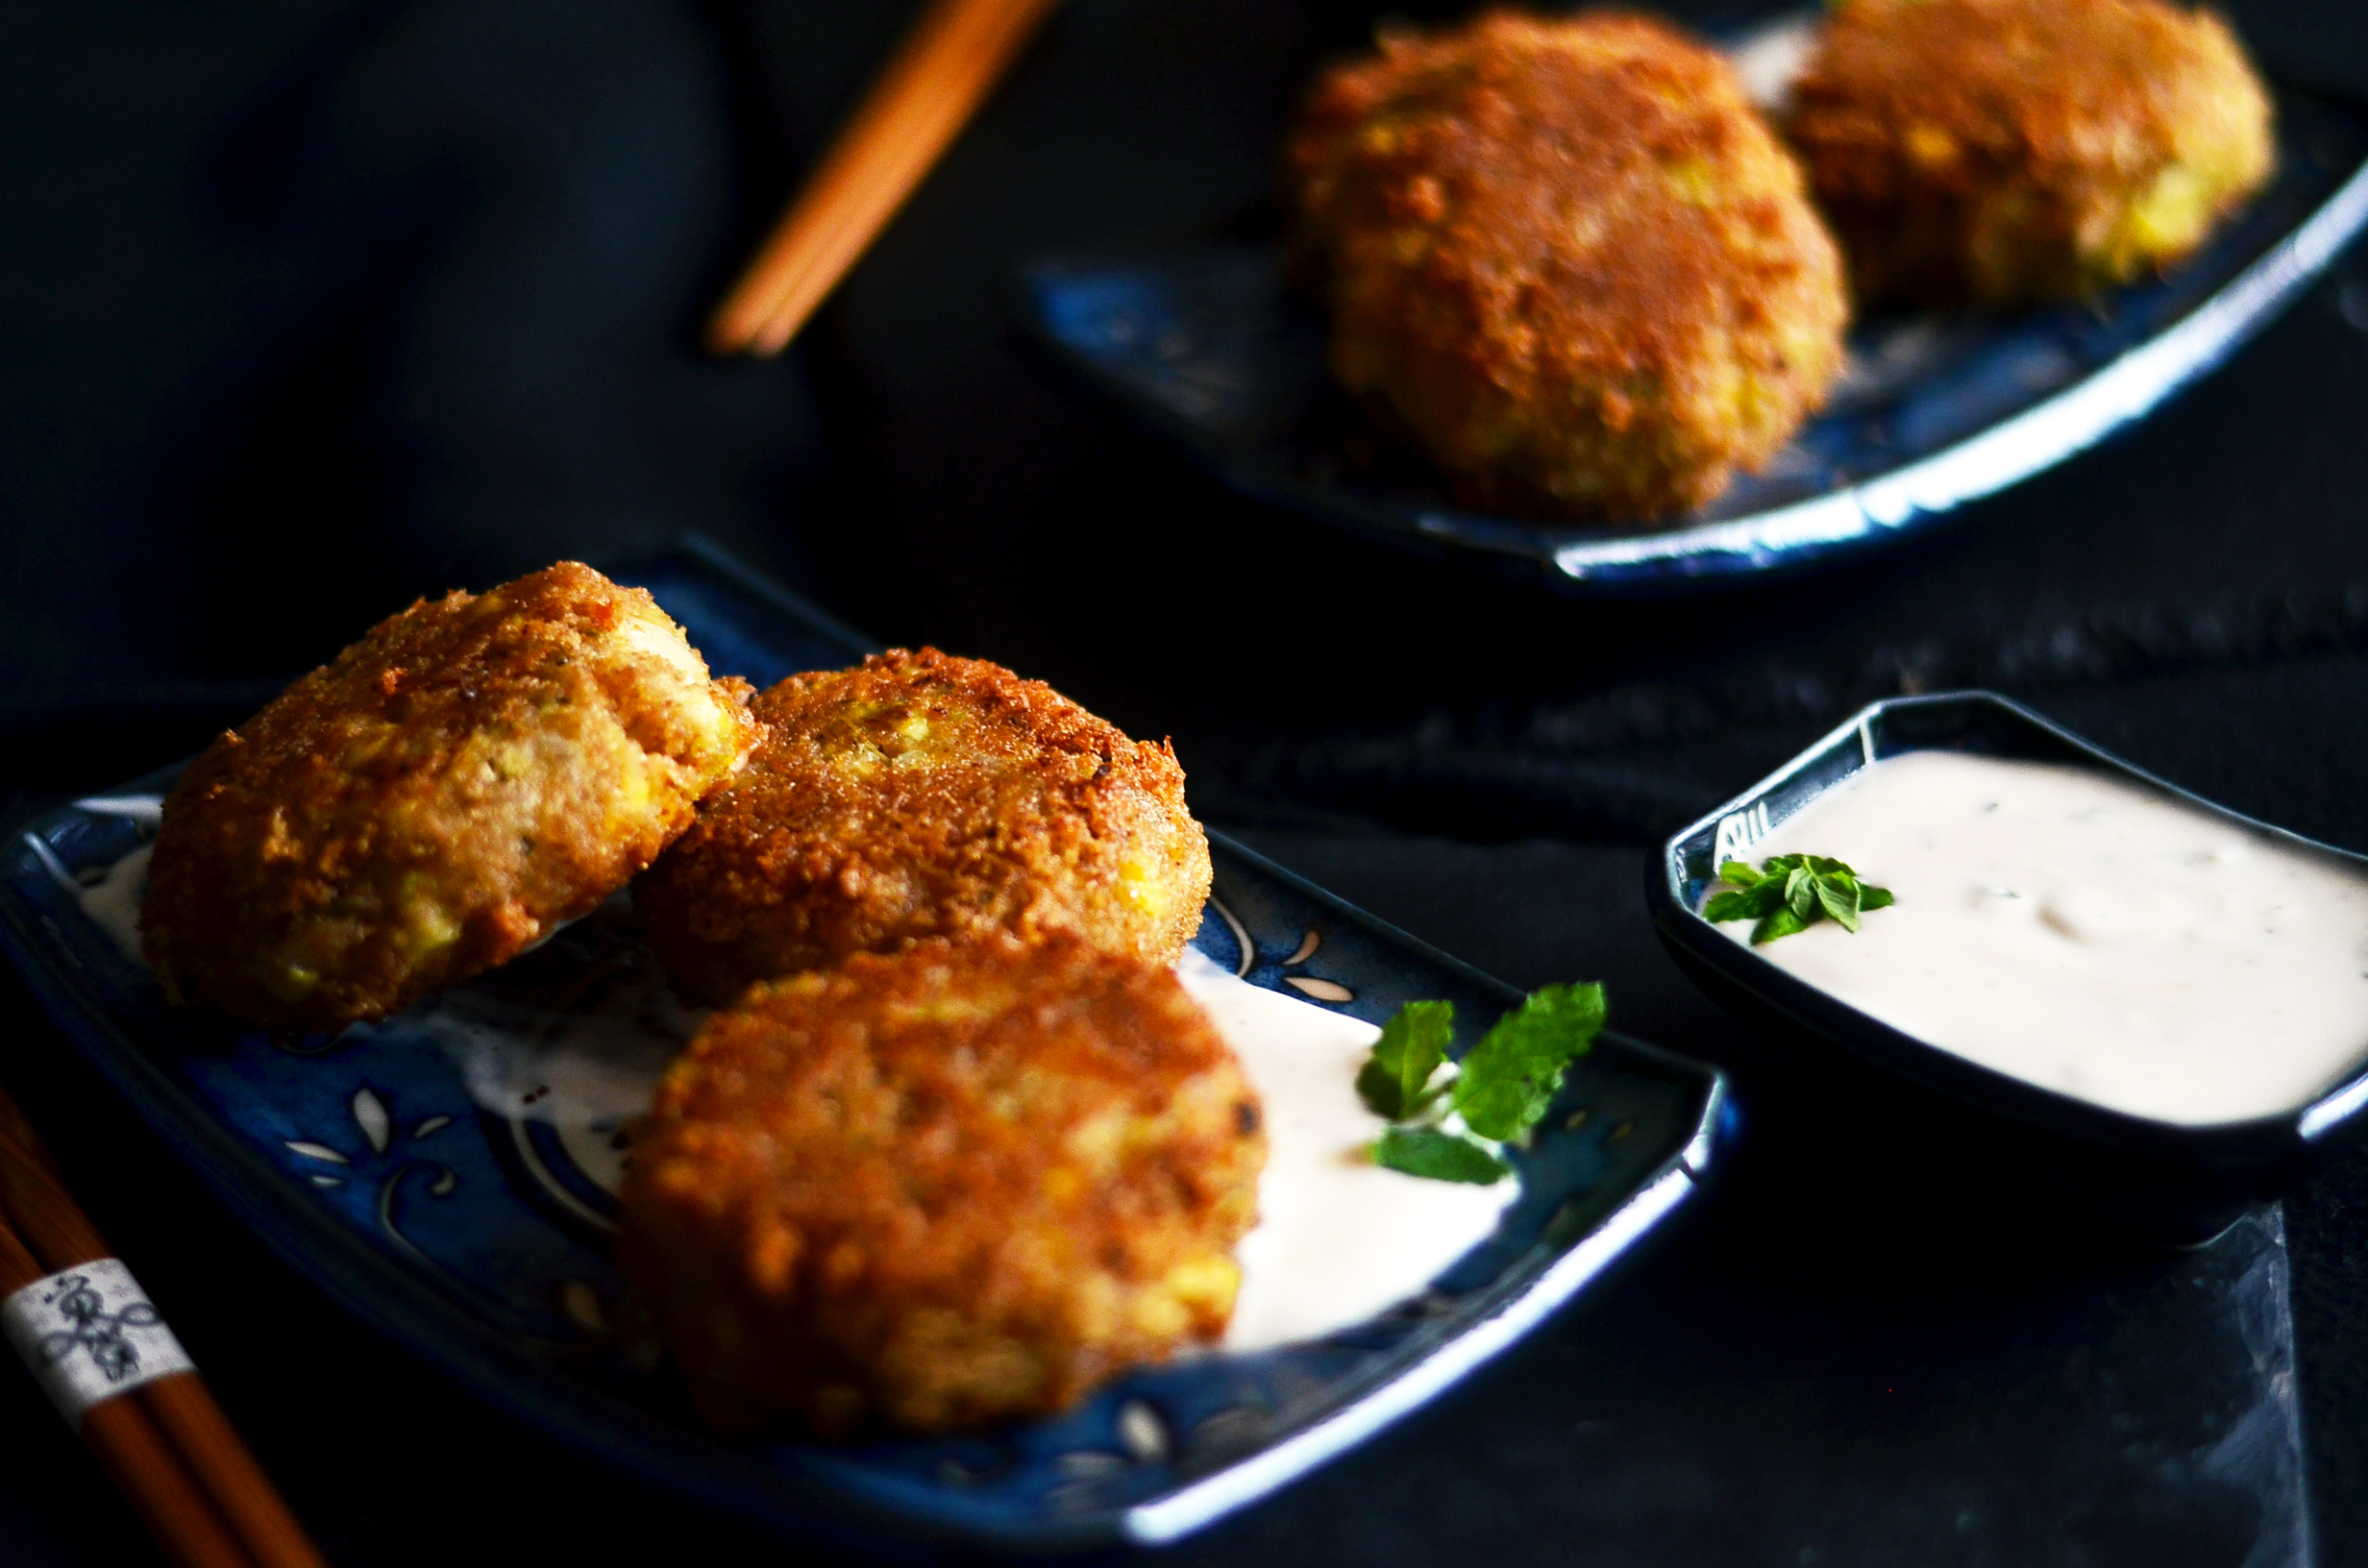 A Minted Ginger Lime Mayo Sauce Accompanied These Crab Cakes But They Could Also Go Beautifully With Soy Sauce Or Even A Traditional Tartar Sauce